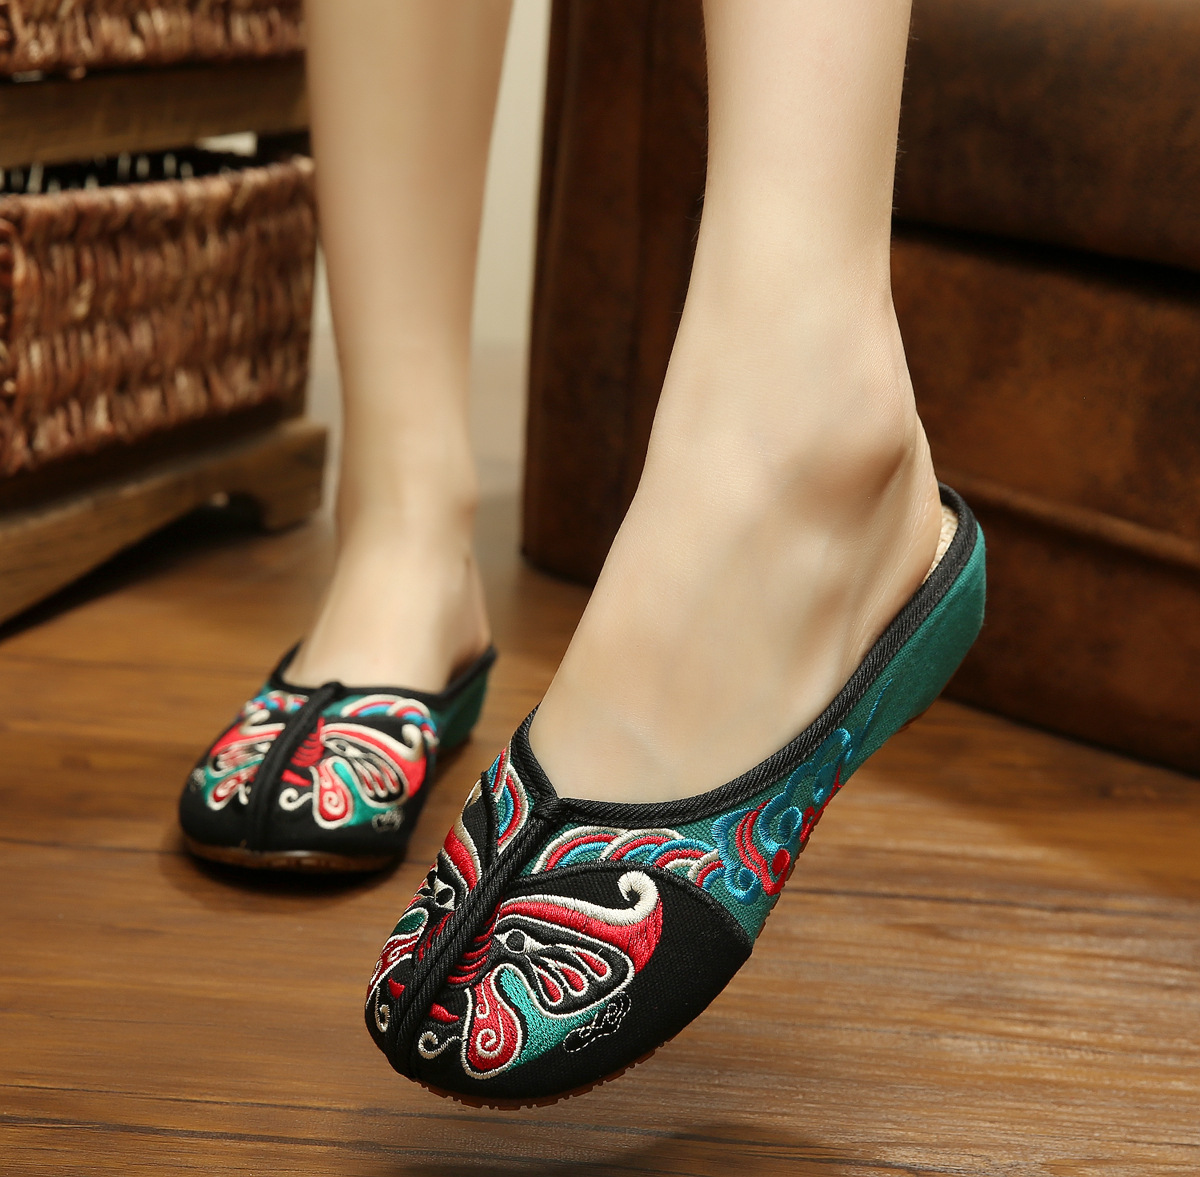 Sandals shoes facebook - Facebook Embroidery Slippers Summer Fashion Women Sandals Chinese Casual Slippers 36 41 Sandals Shoes Woman